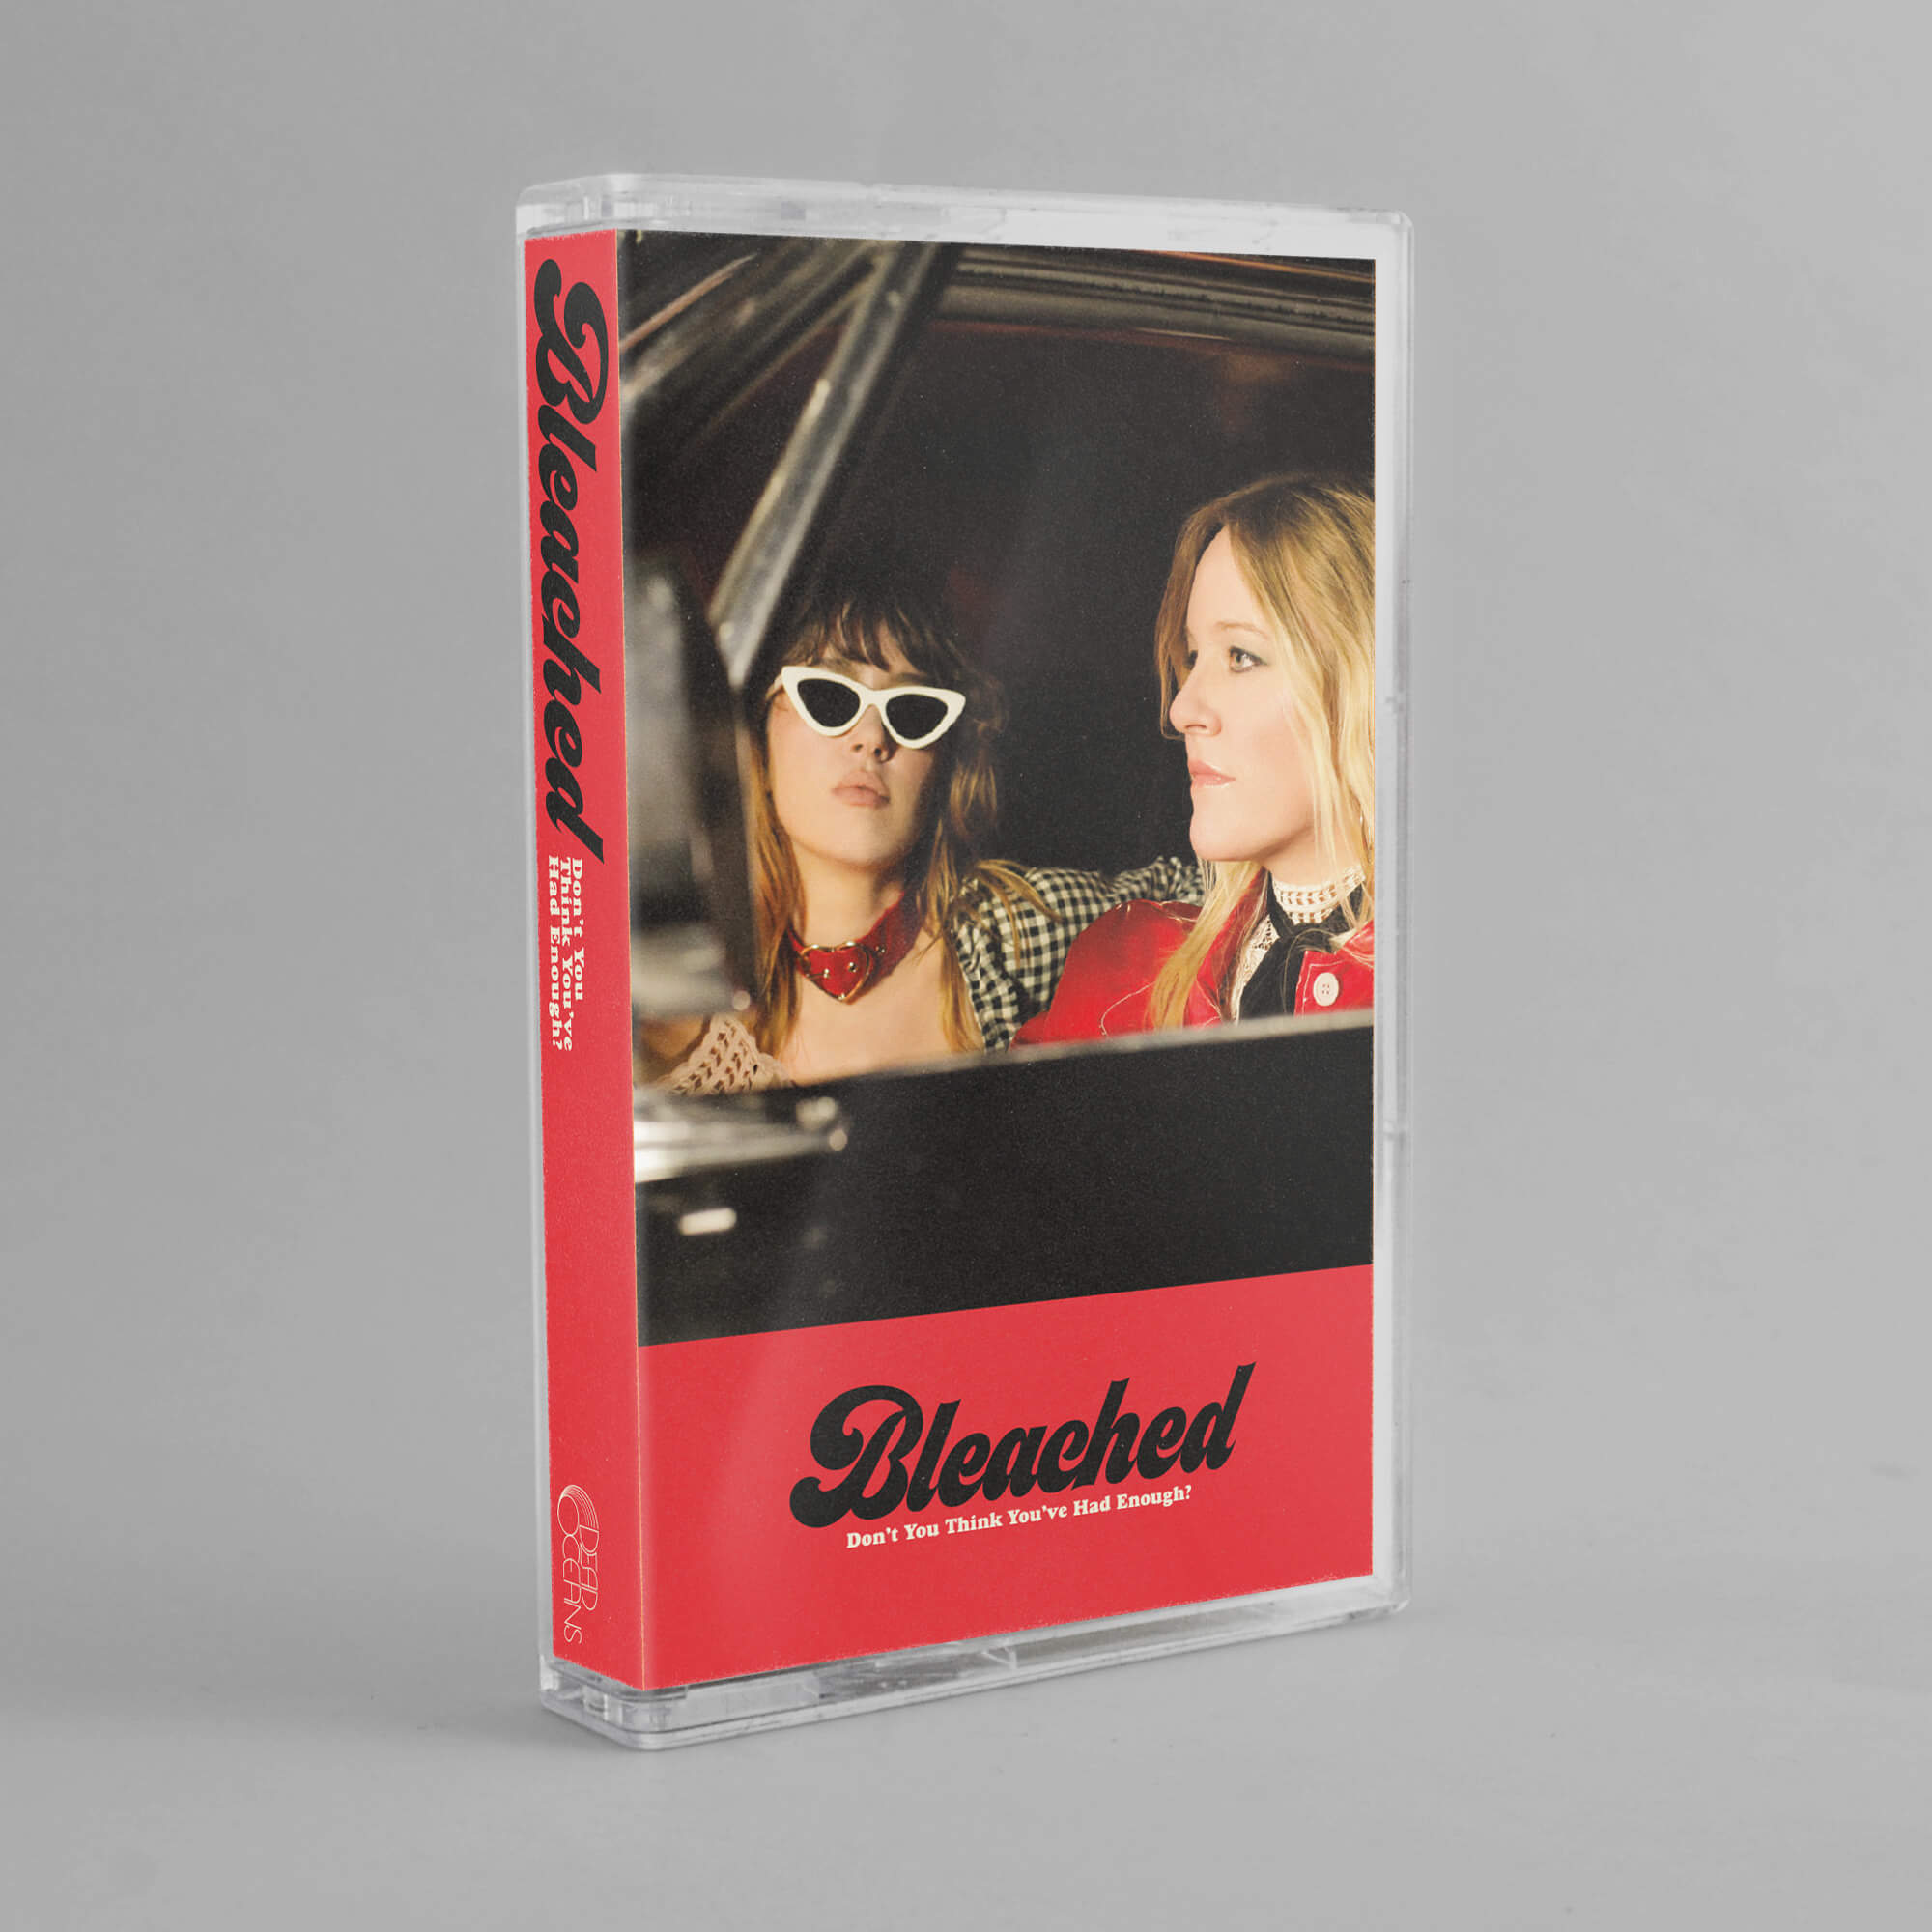 Don't You Think You've Had Enough? - Bleached   Secretly Store